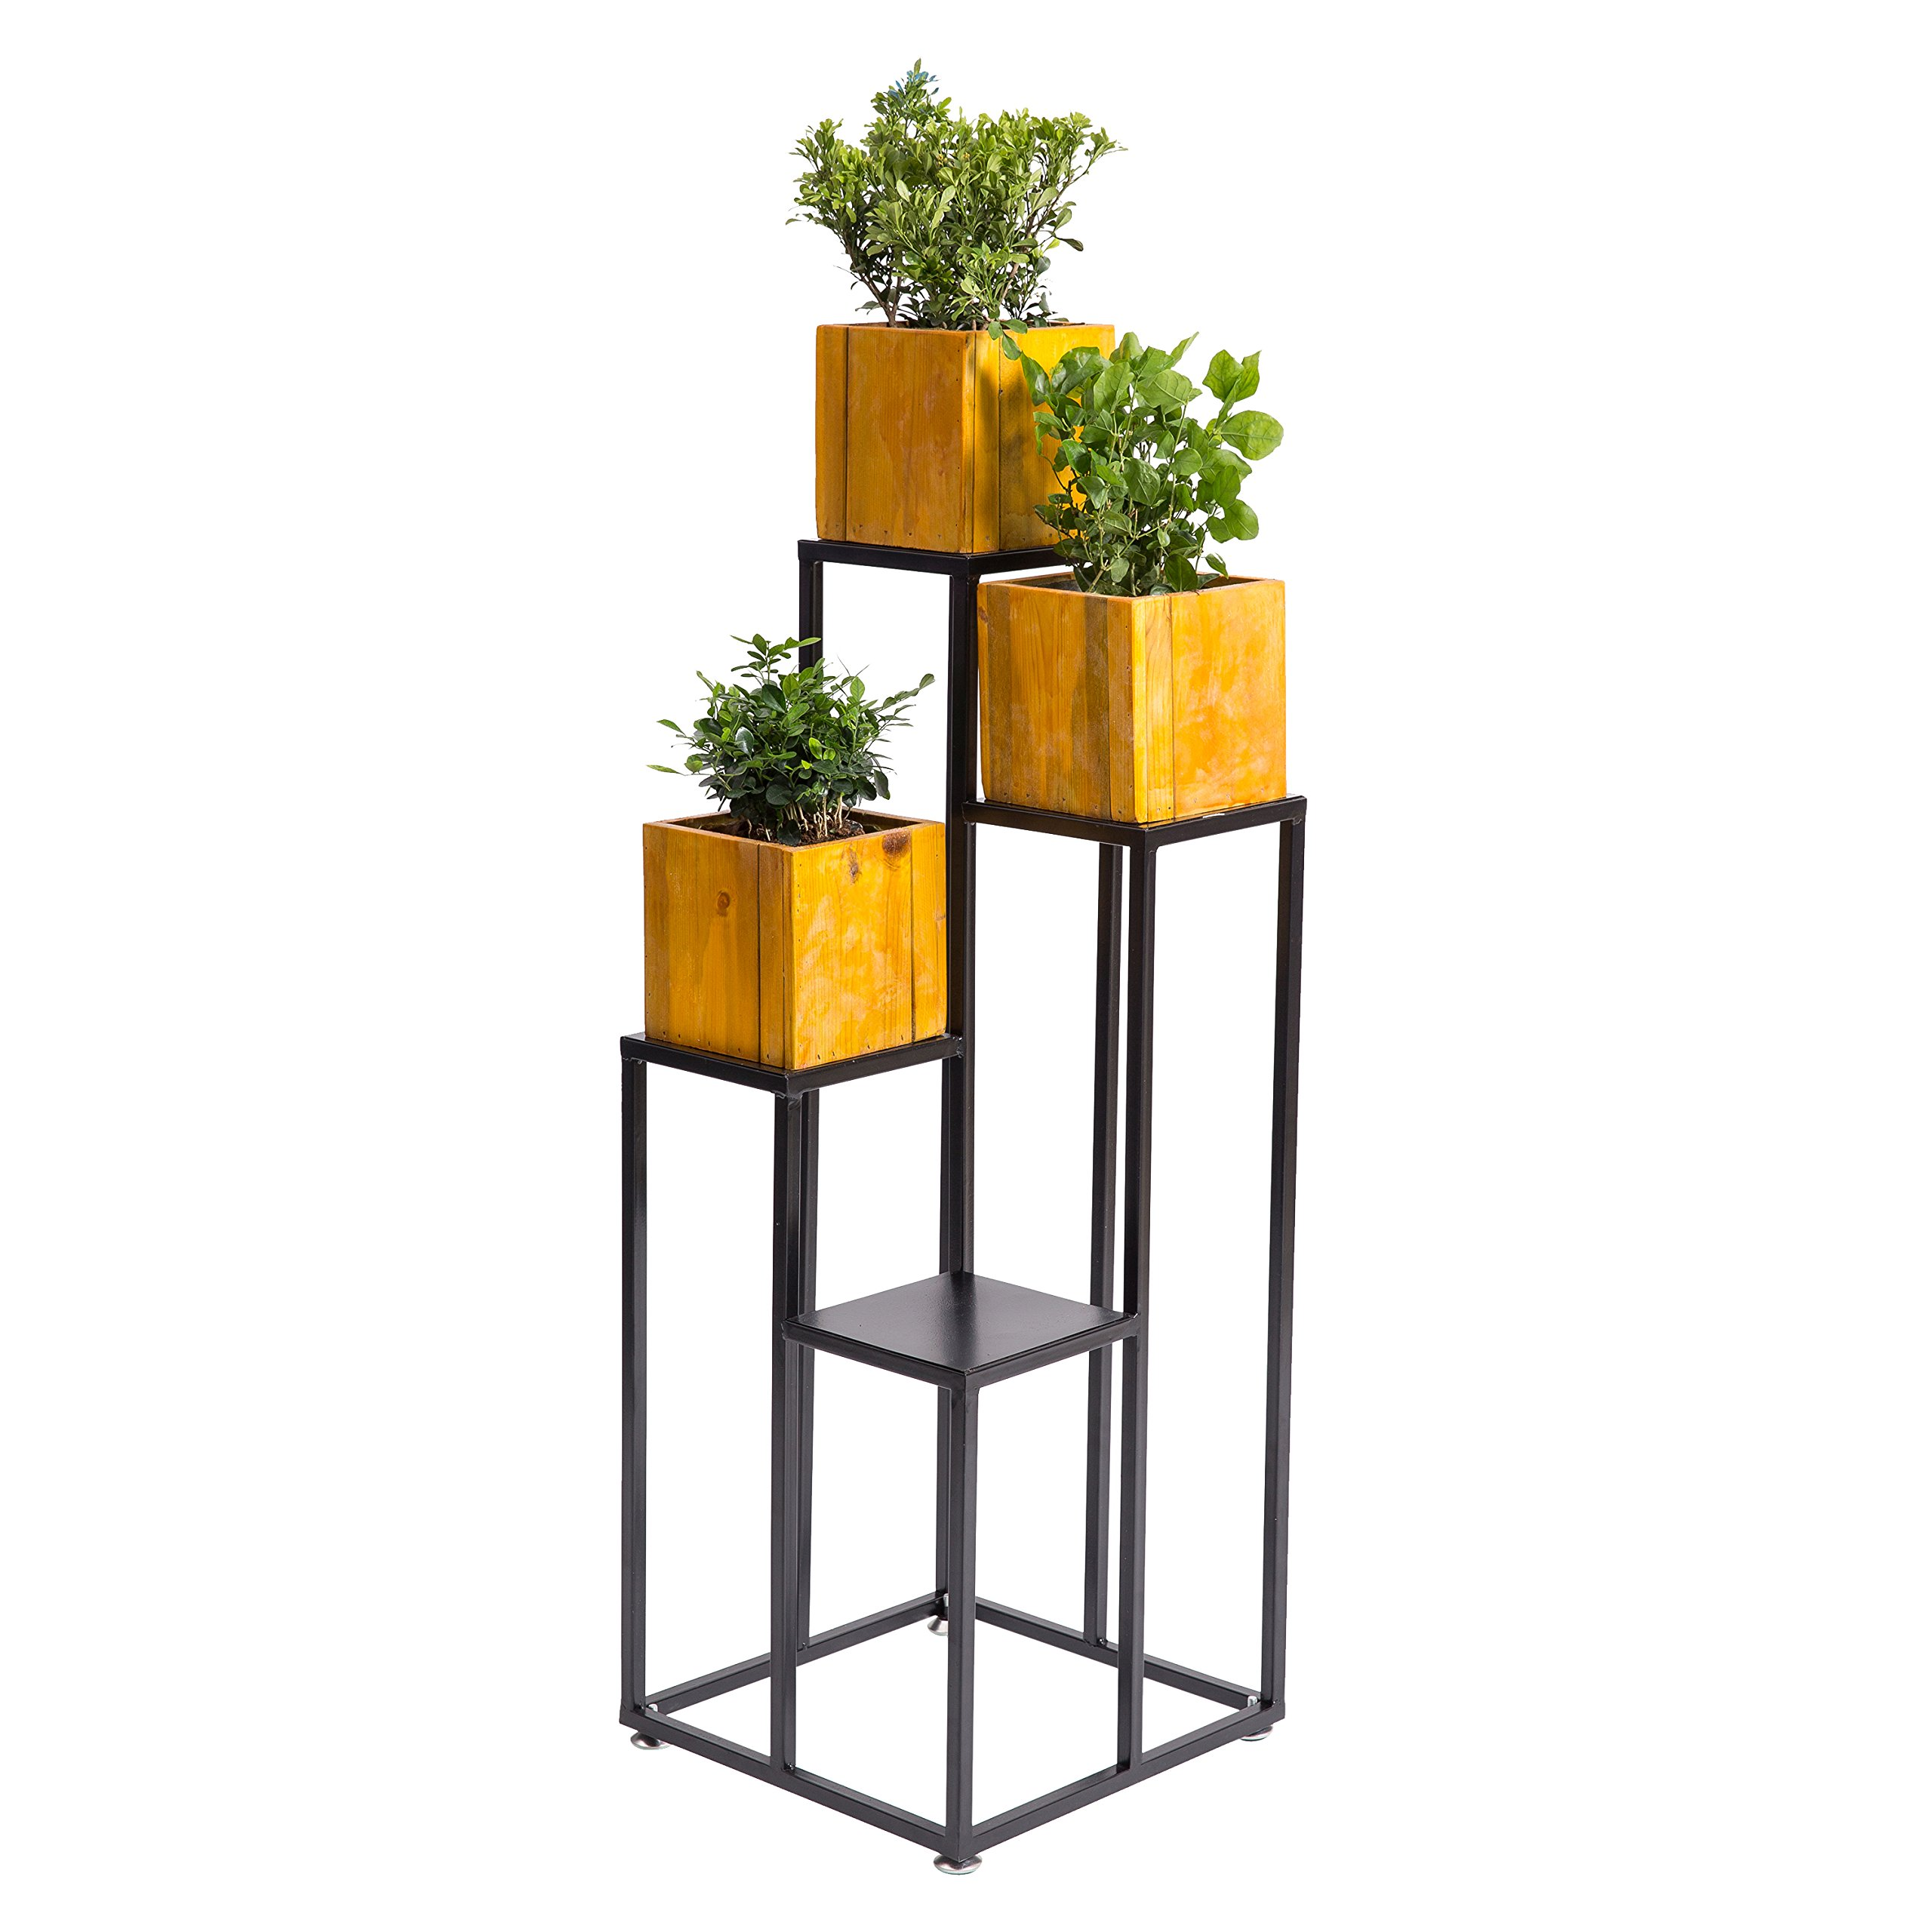 40 Inch Large Multilevel Black Metal 4-tier Planter Stand, Decorative Indoor Shelf Display Rack by MyGift